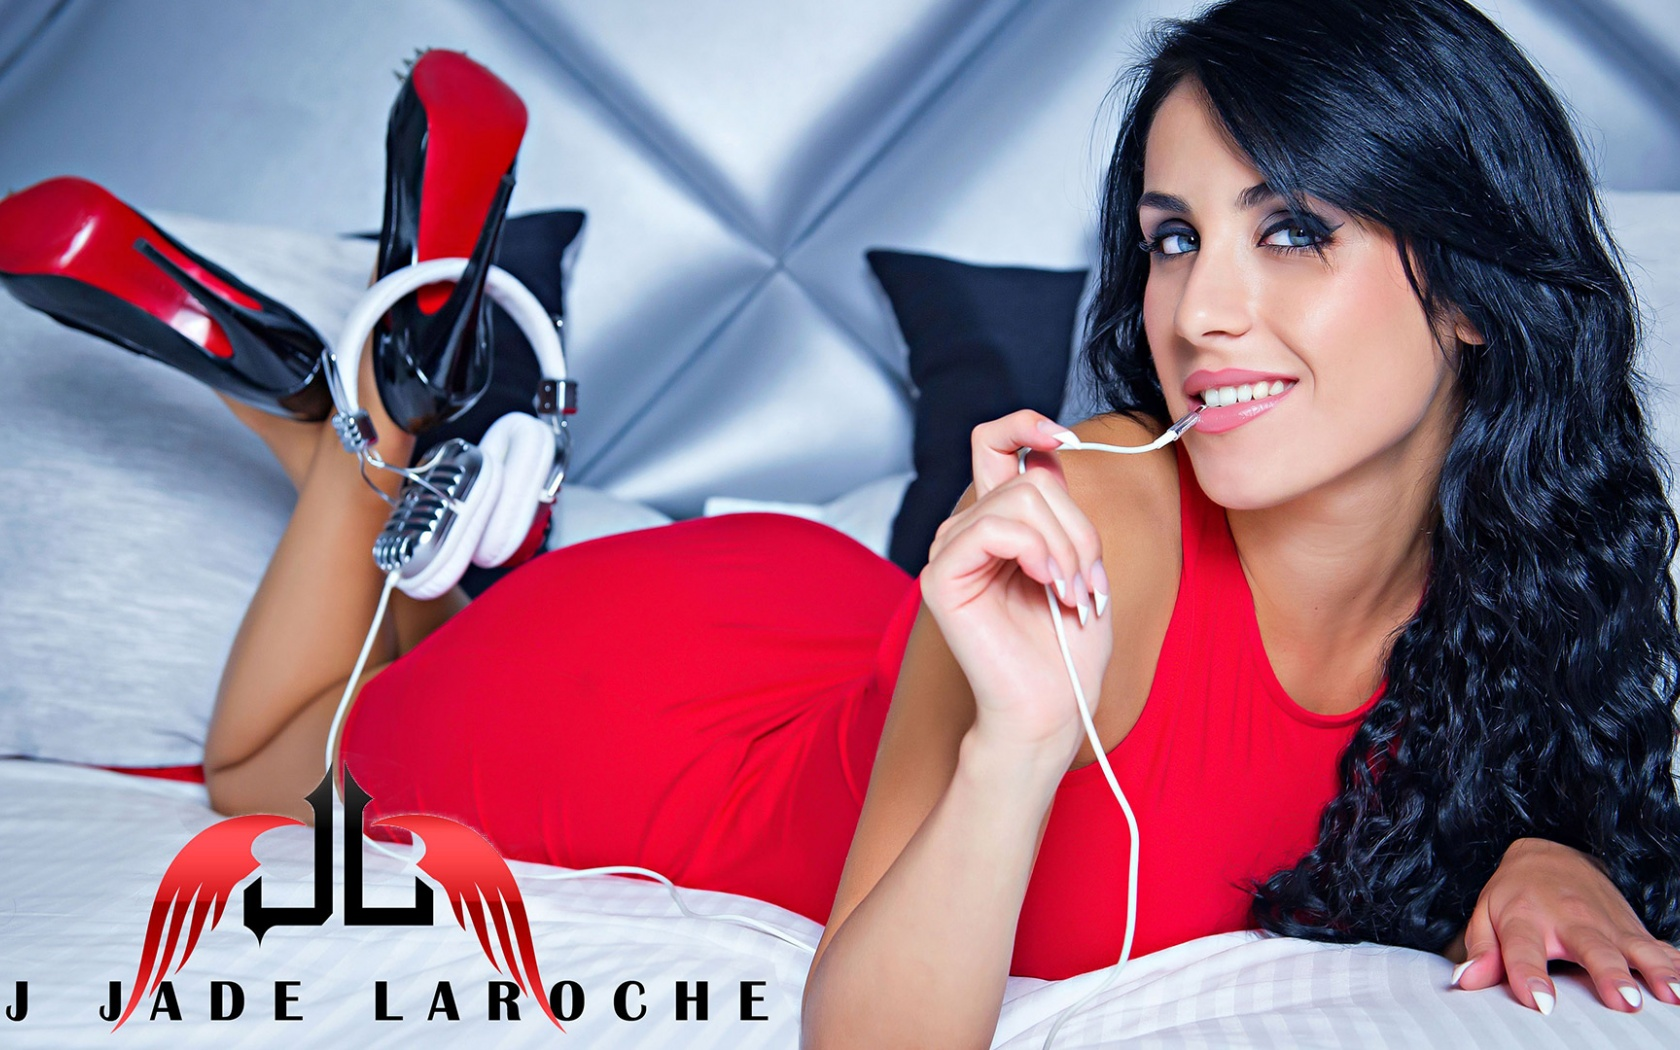 Dj Jade Laroche HD and Wide Wallpapers